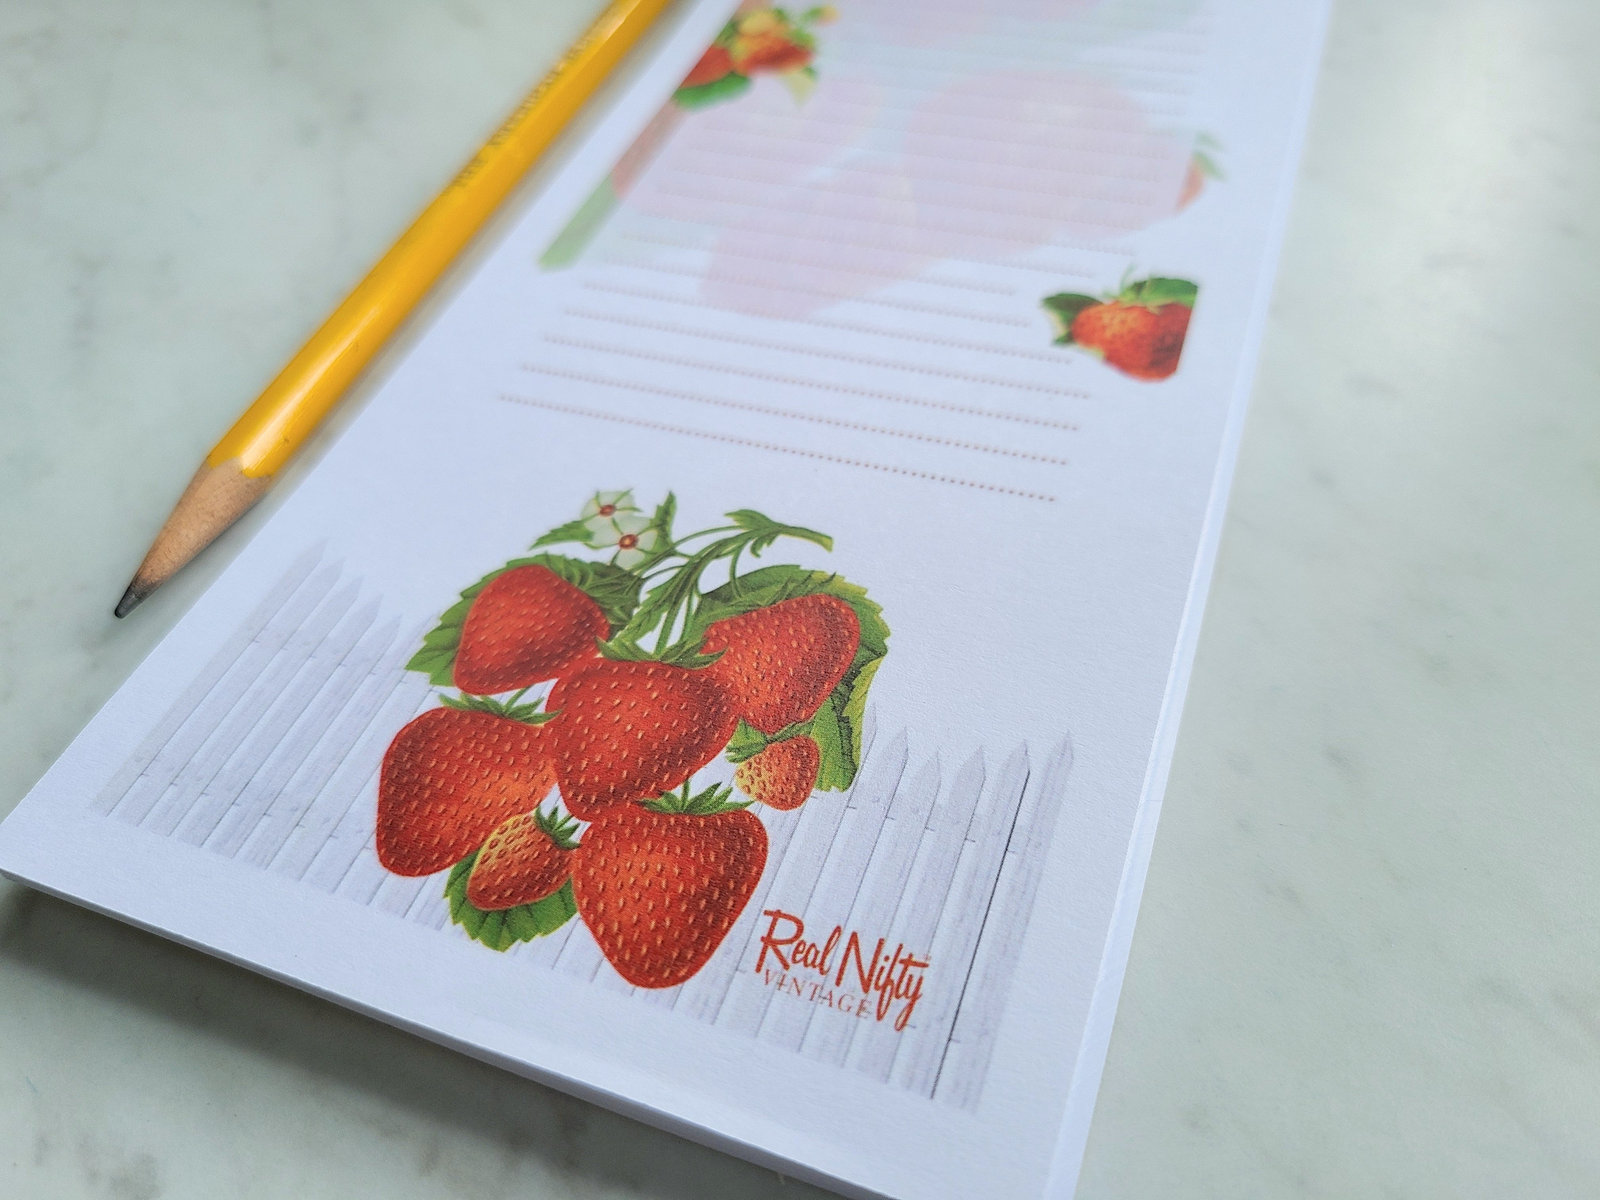 Strawberry Notepad with Magnet, 50 Sheets, Vintage Inspired Strawberries Pad